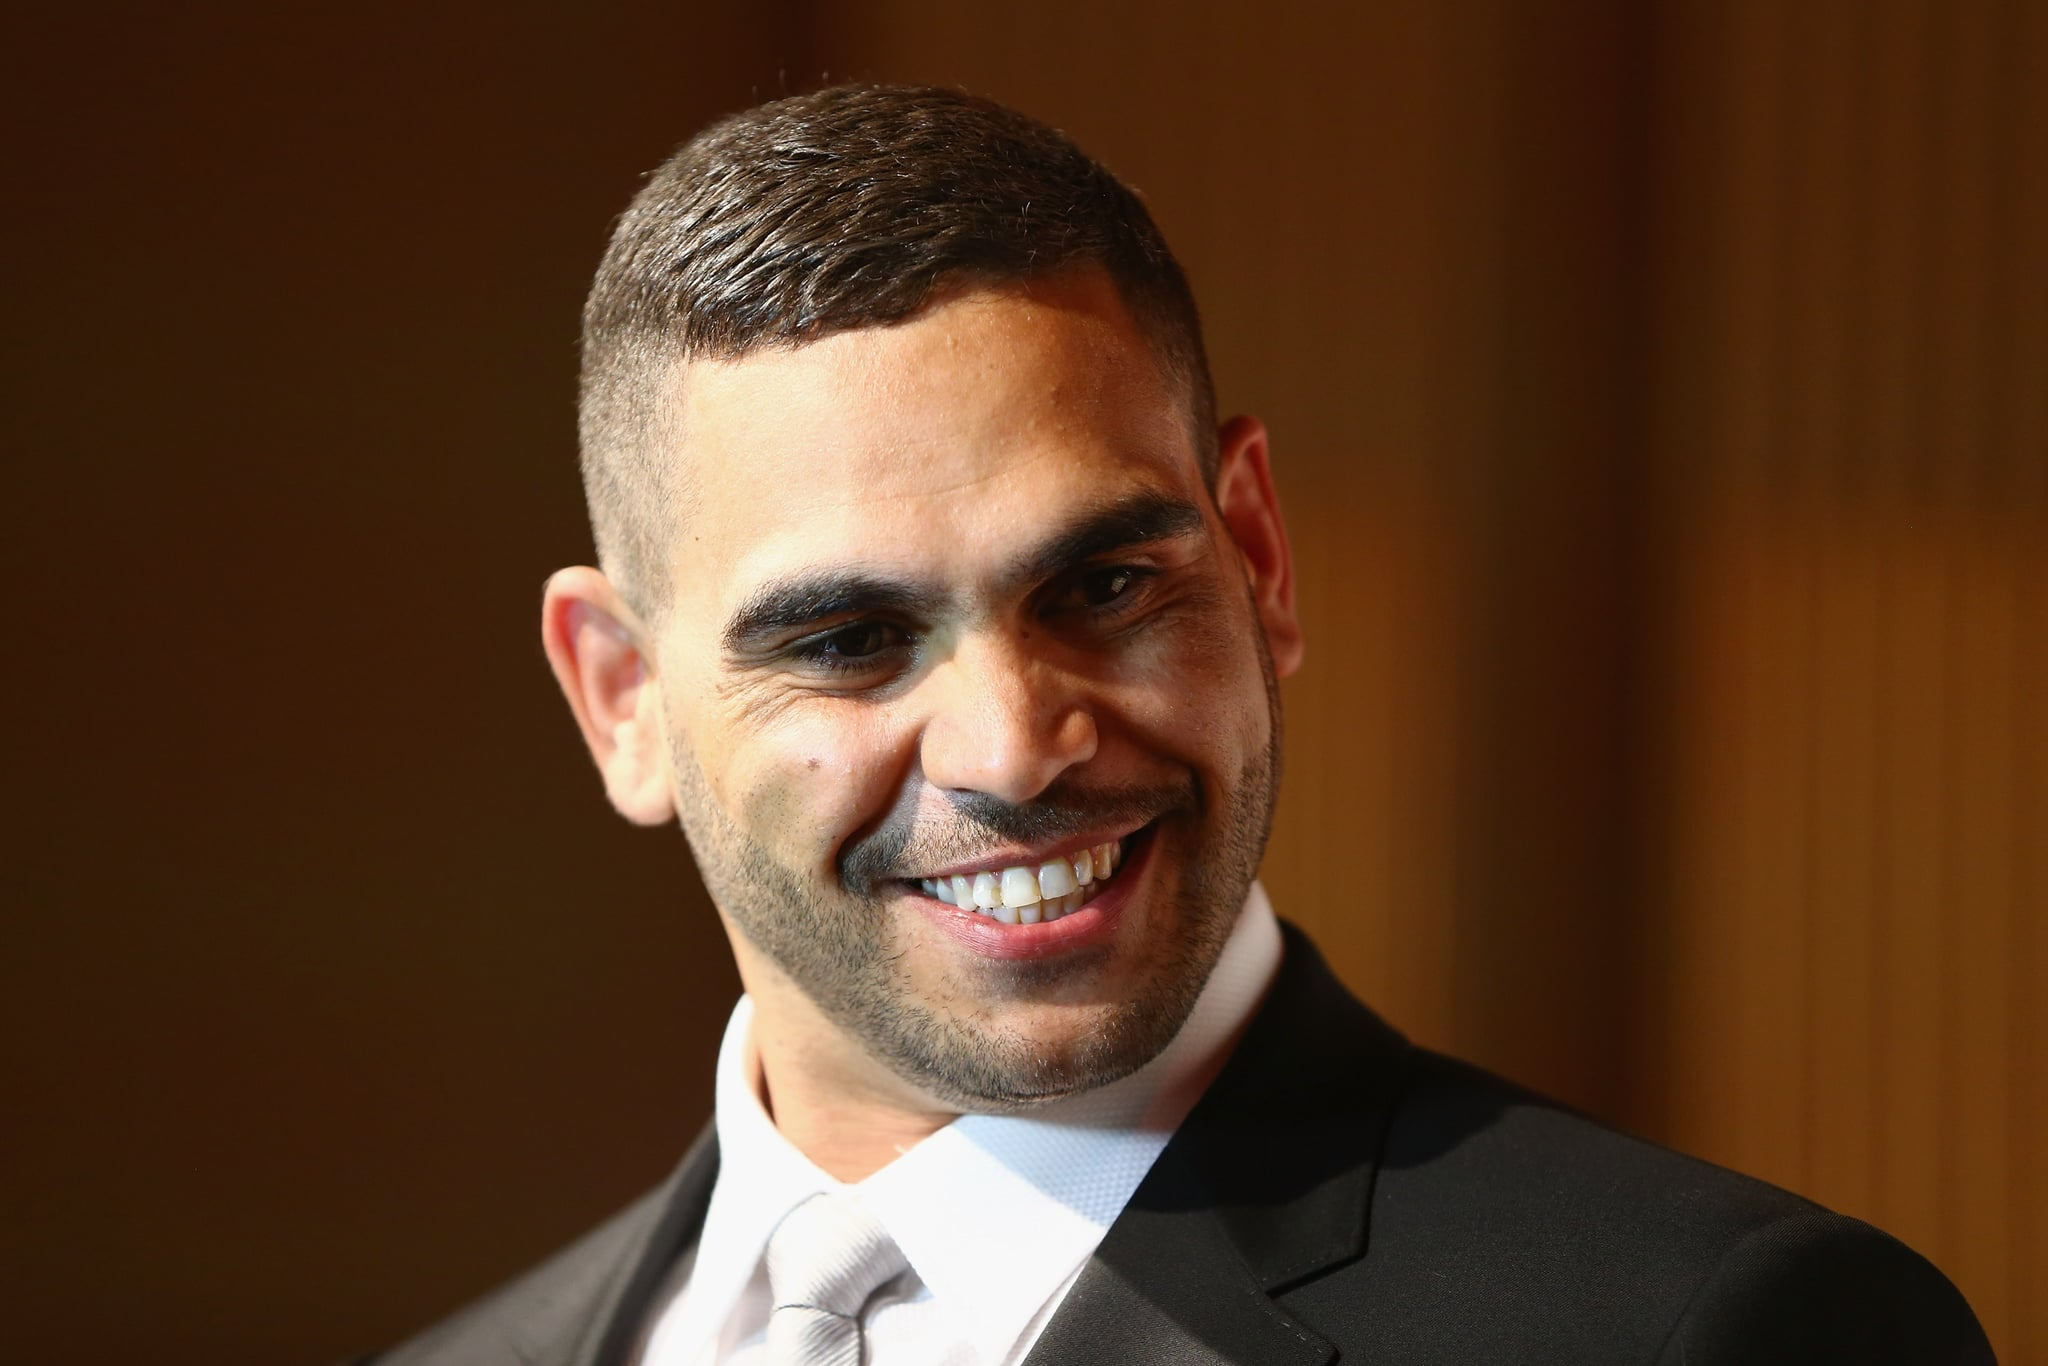 greg inglis - photo #35